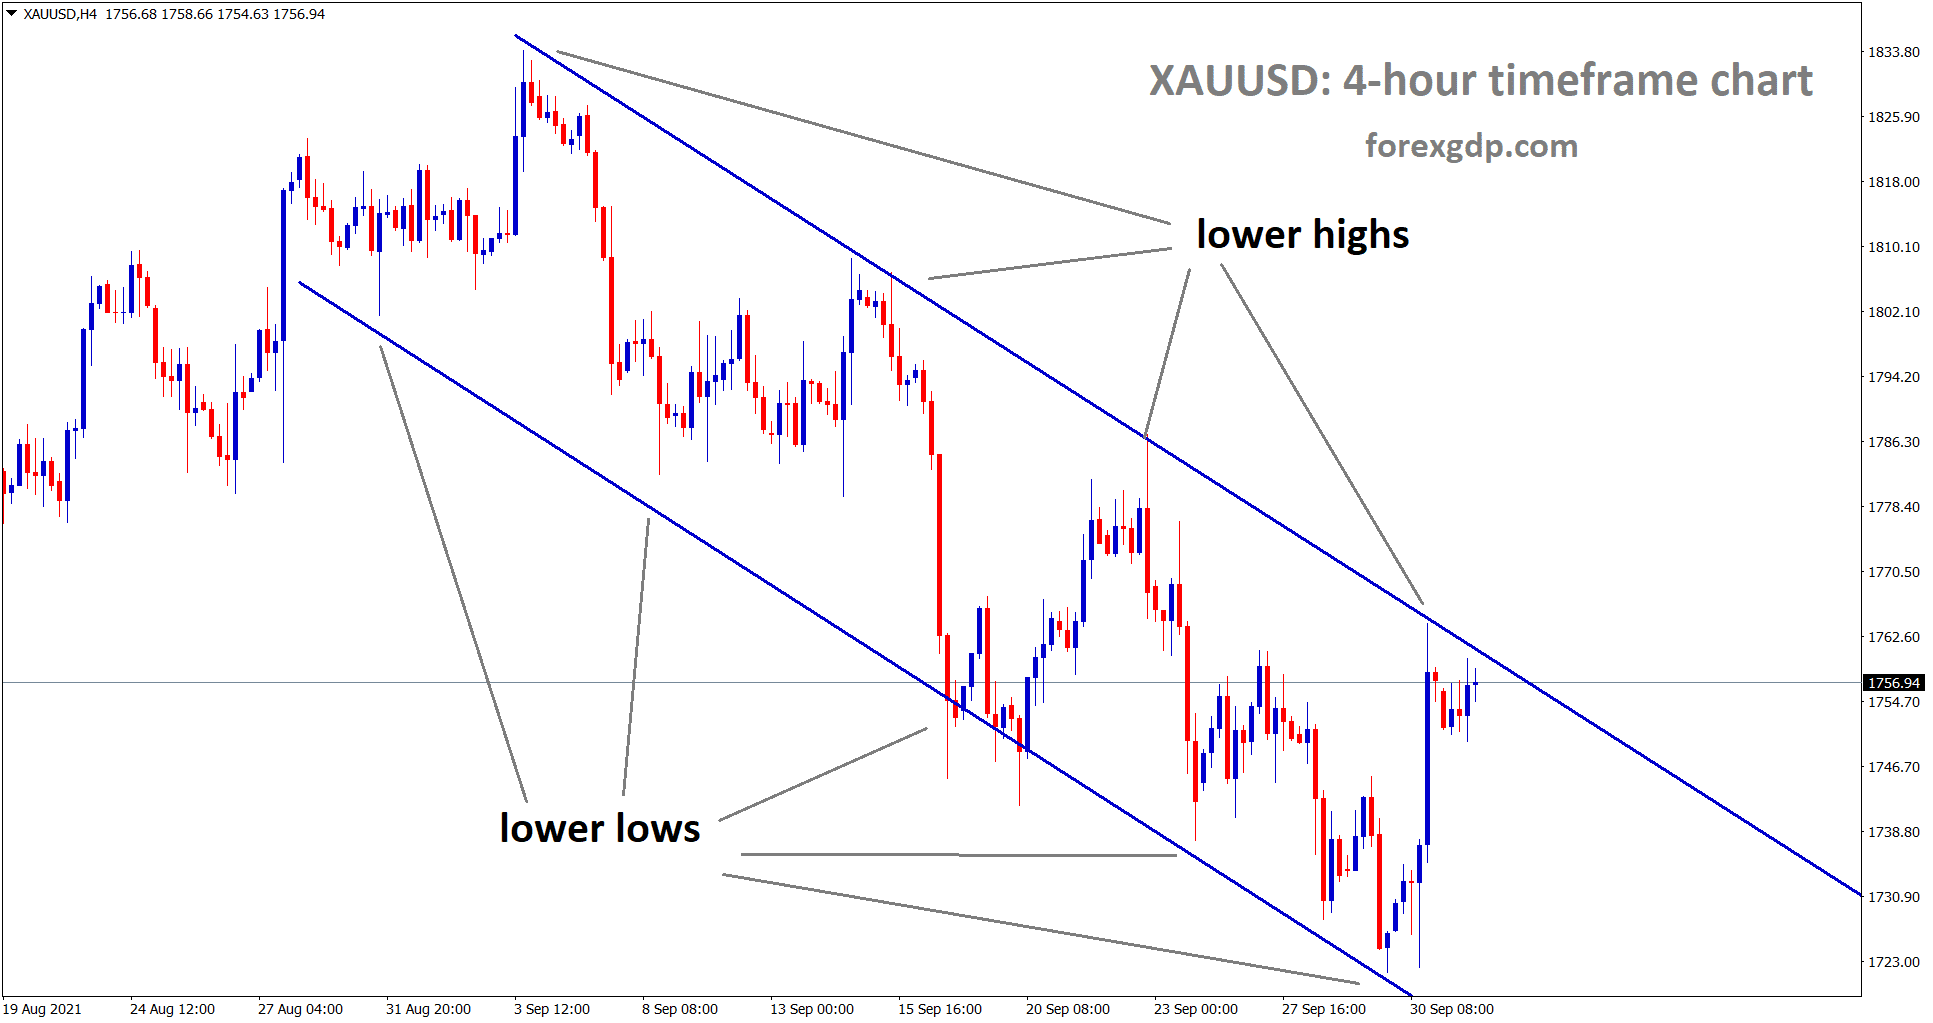 Gold price is standing now exactly at the lower high area of the descending channel wait for breakout or reversal